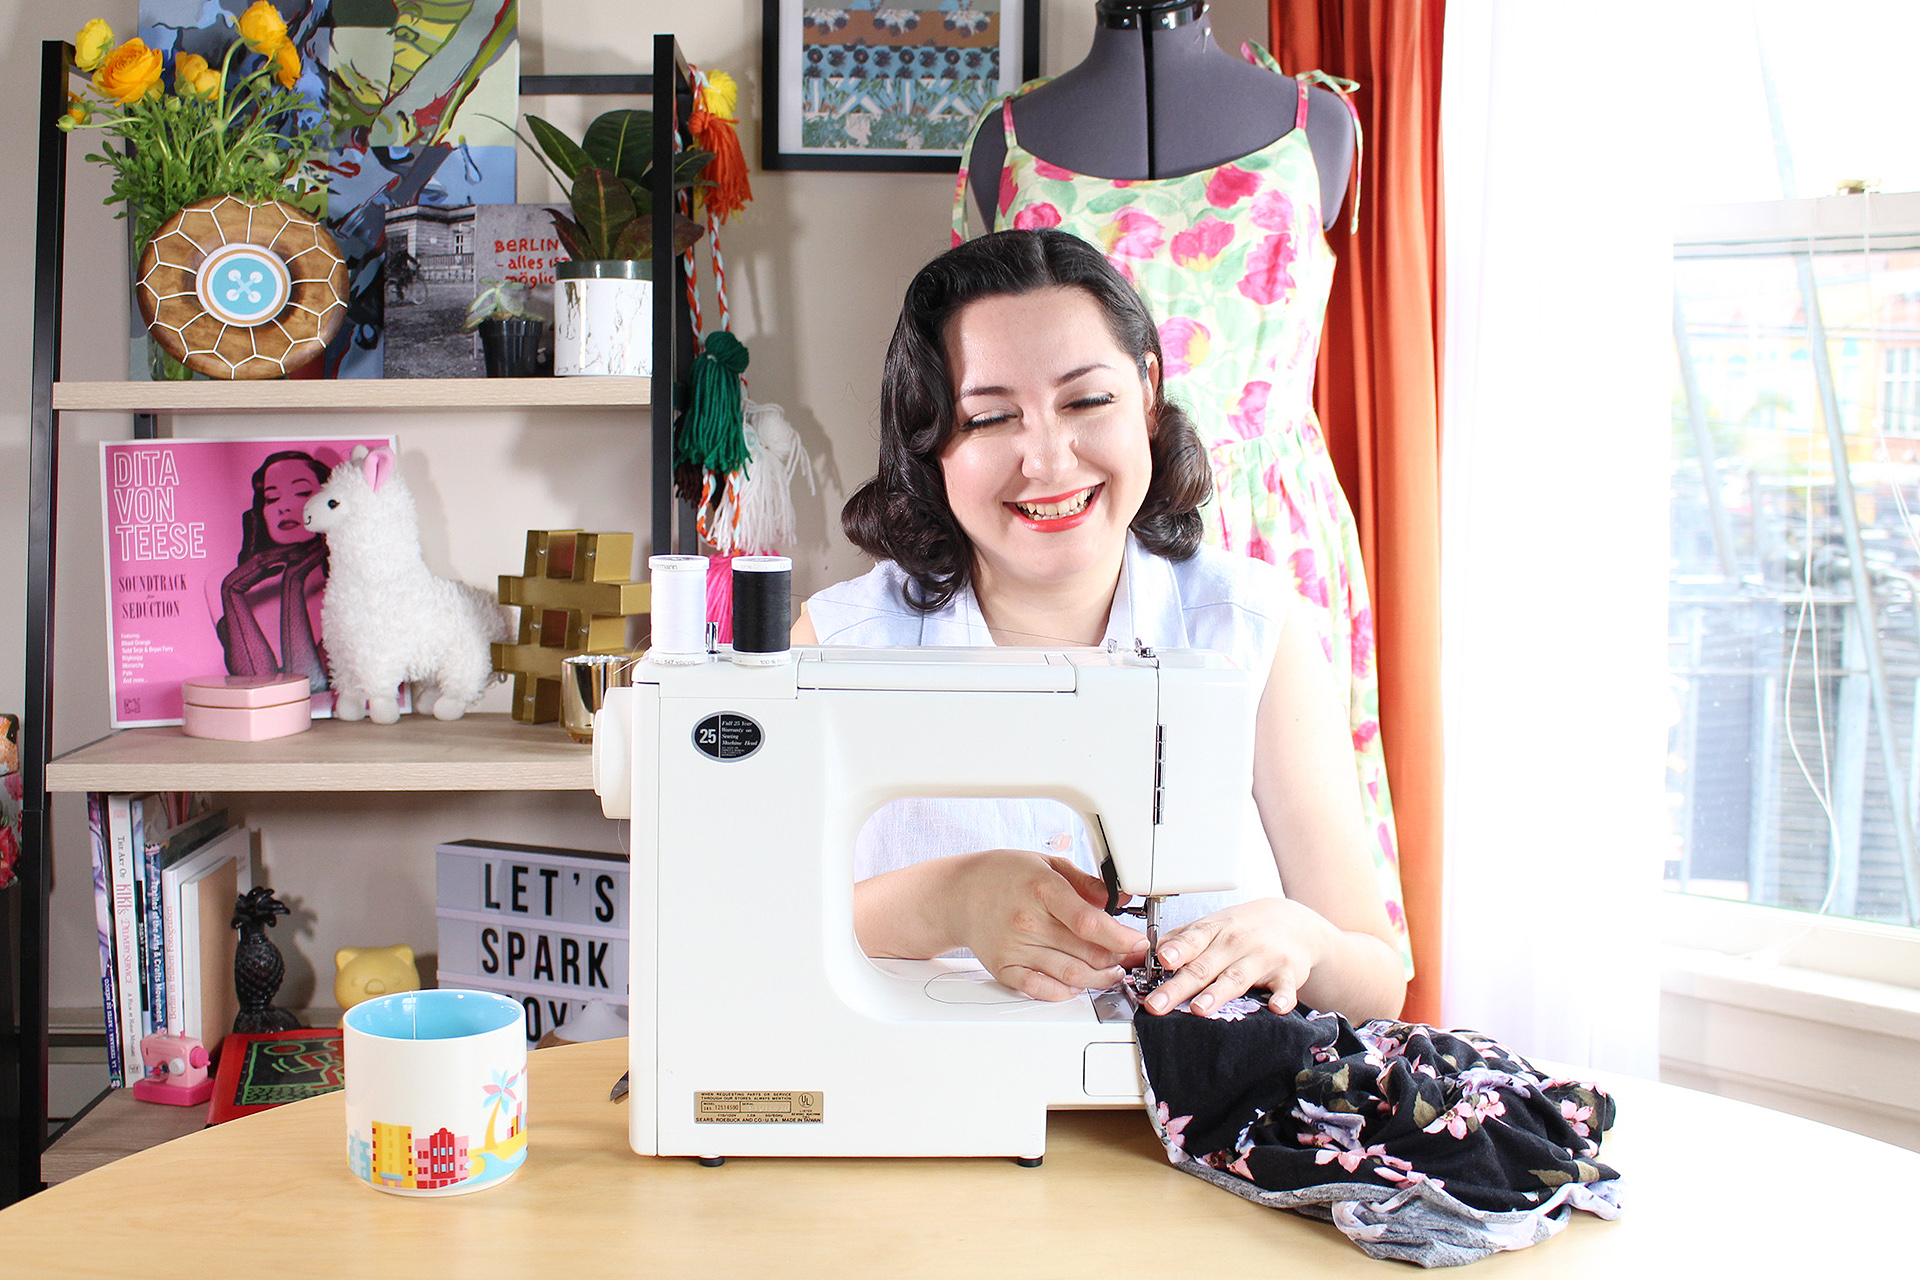 How to sew vintage, tutorials and tips for handmade clothing   Vintage on Tap